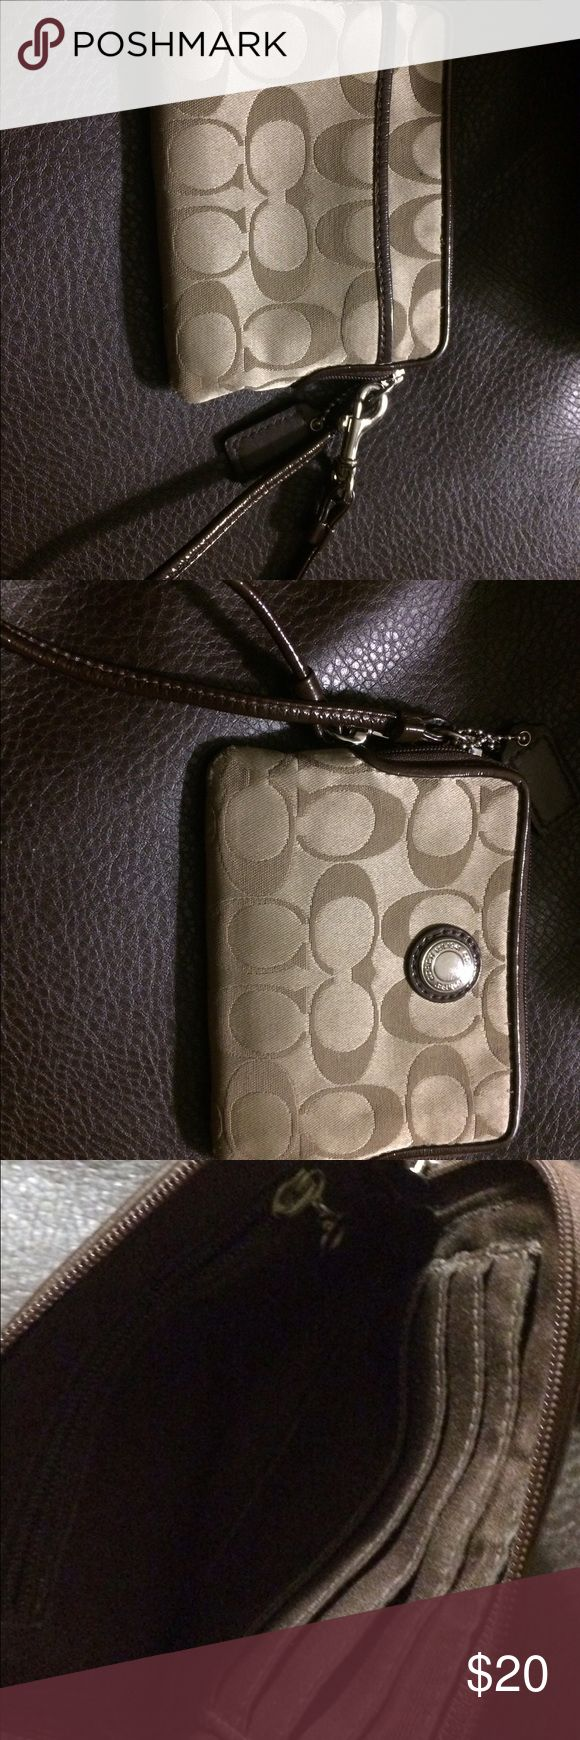 Coach mini wallet Mini Skinny Wallet in Signature Coated Canvas by Coach Coach Bags Wallets